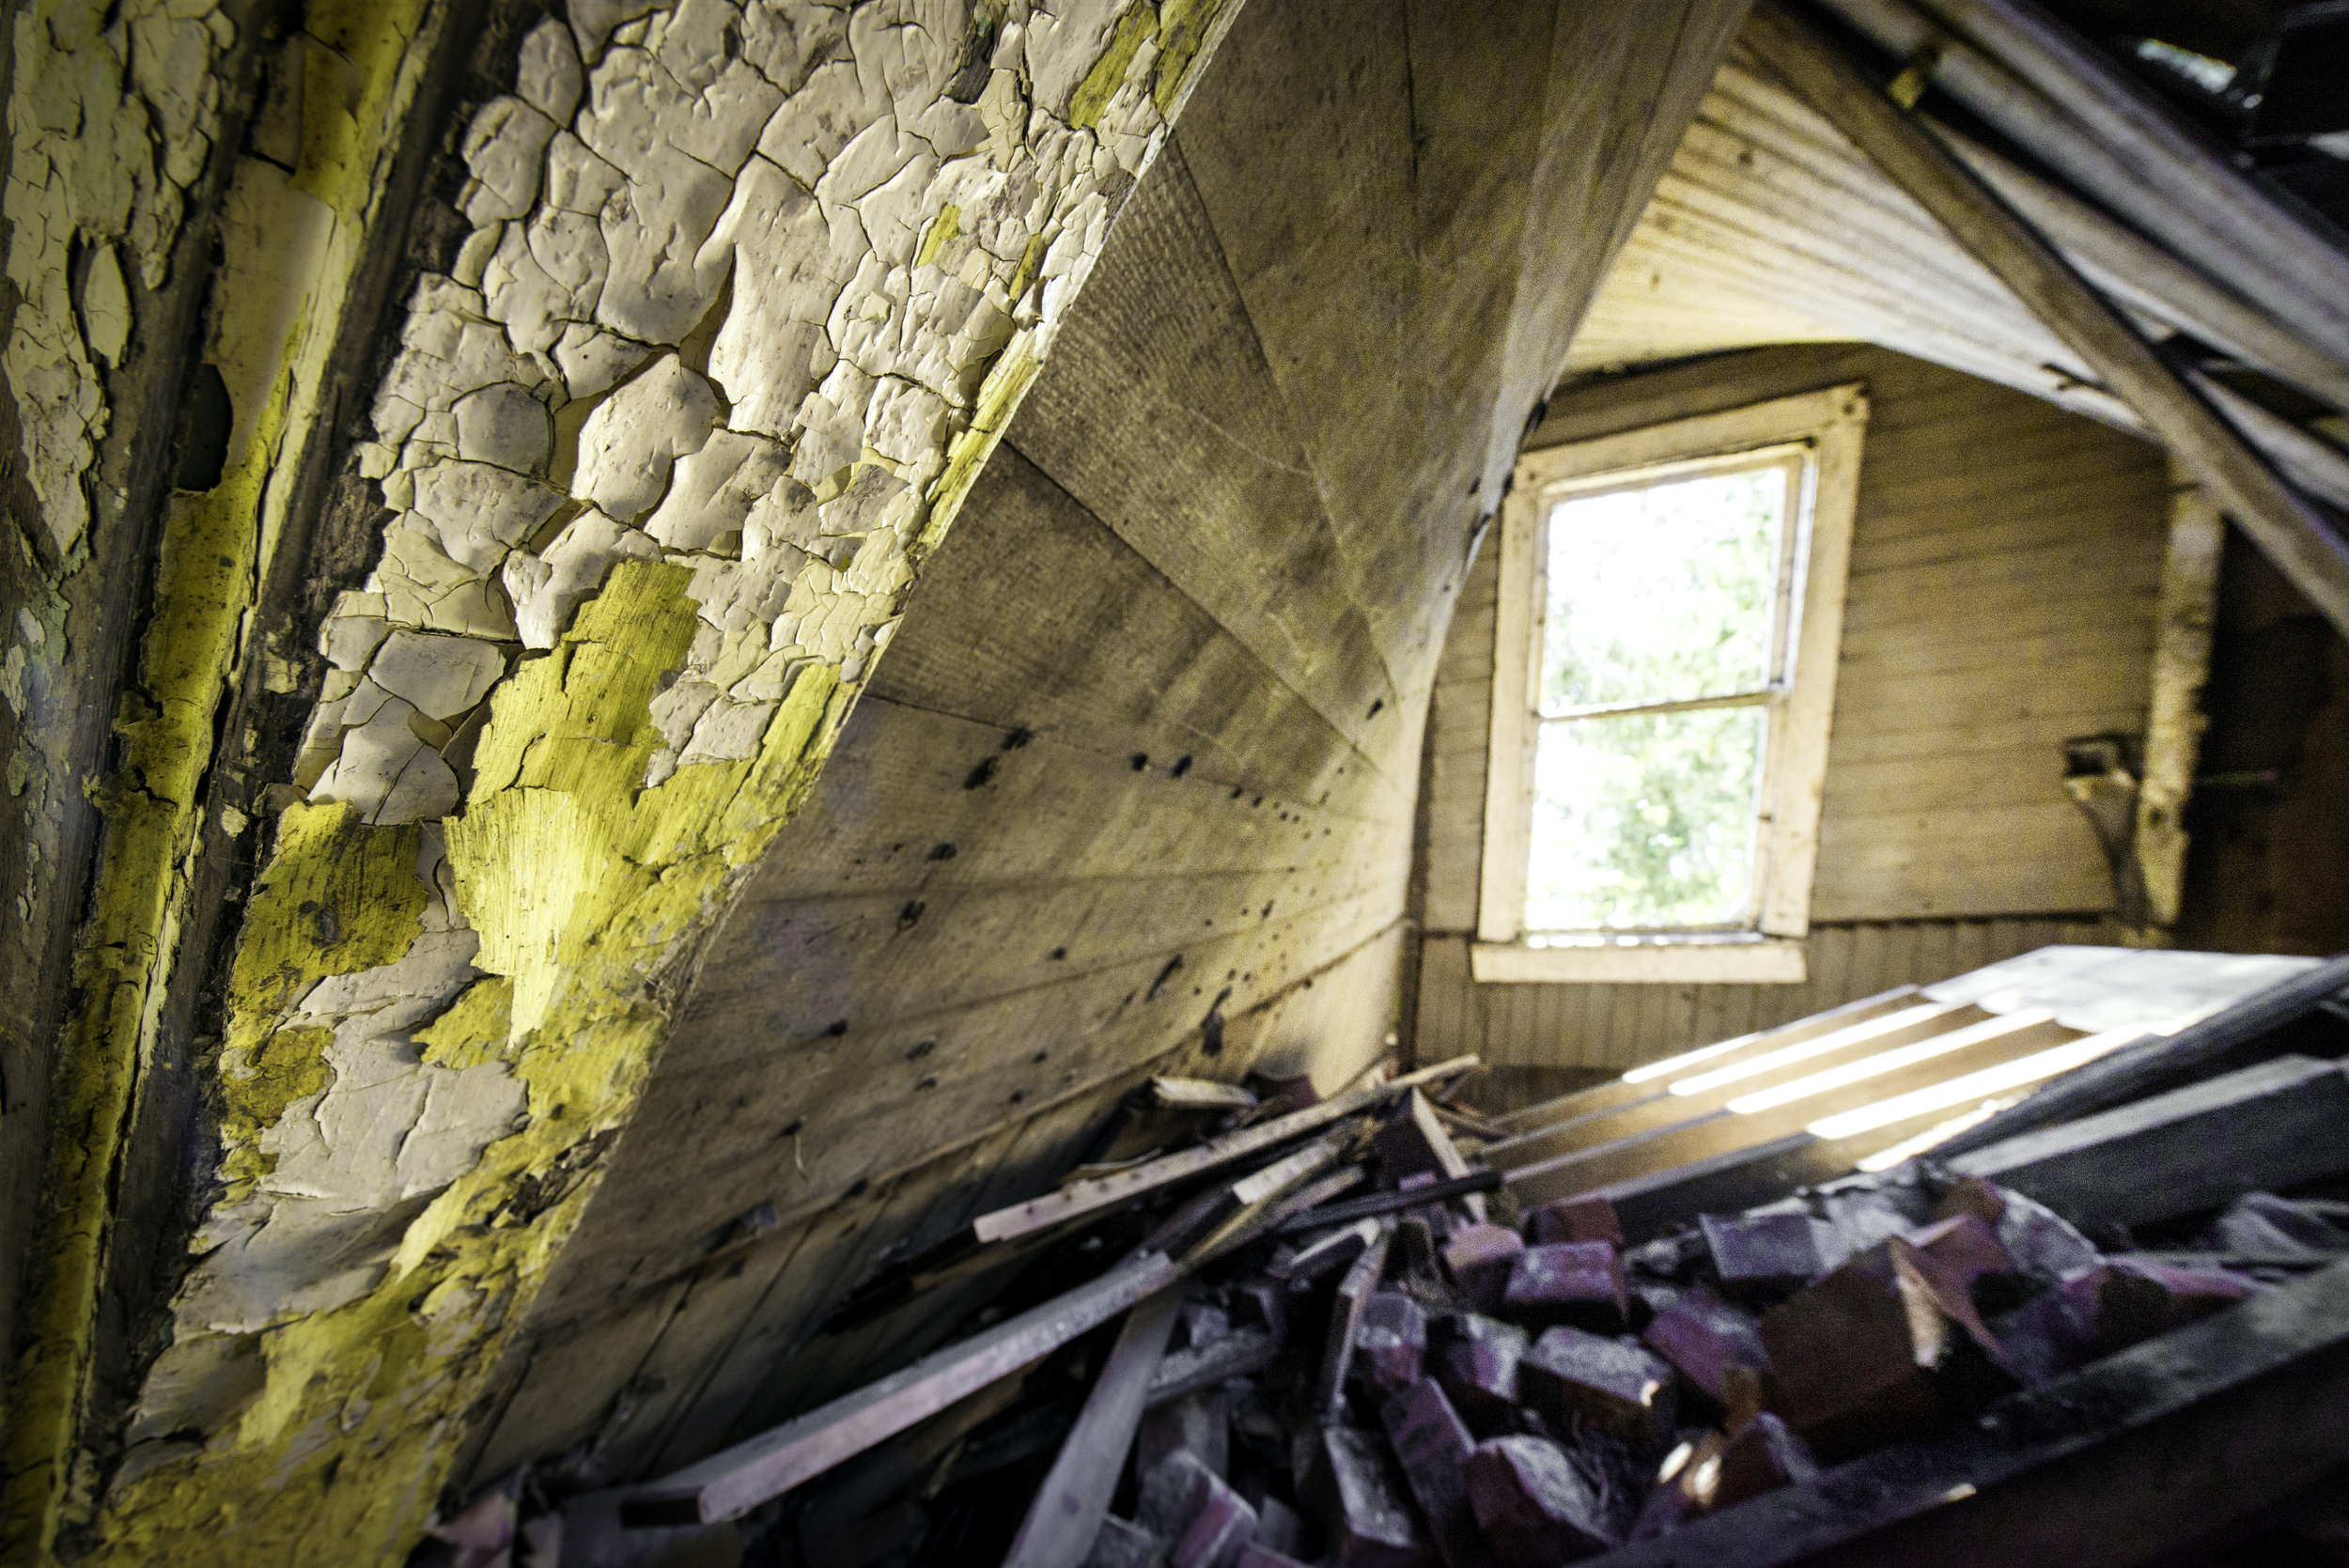 A decrepit old piano lies face down in the ruins of this slanted house